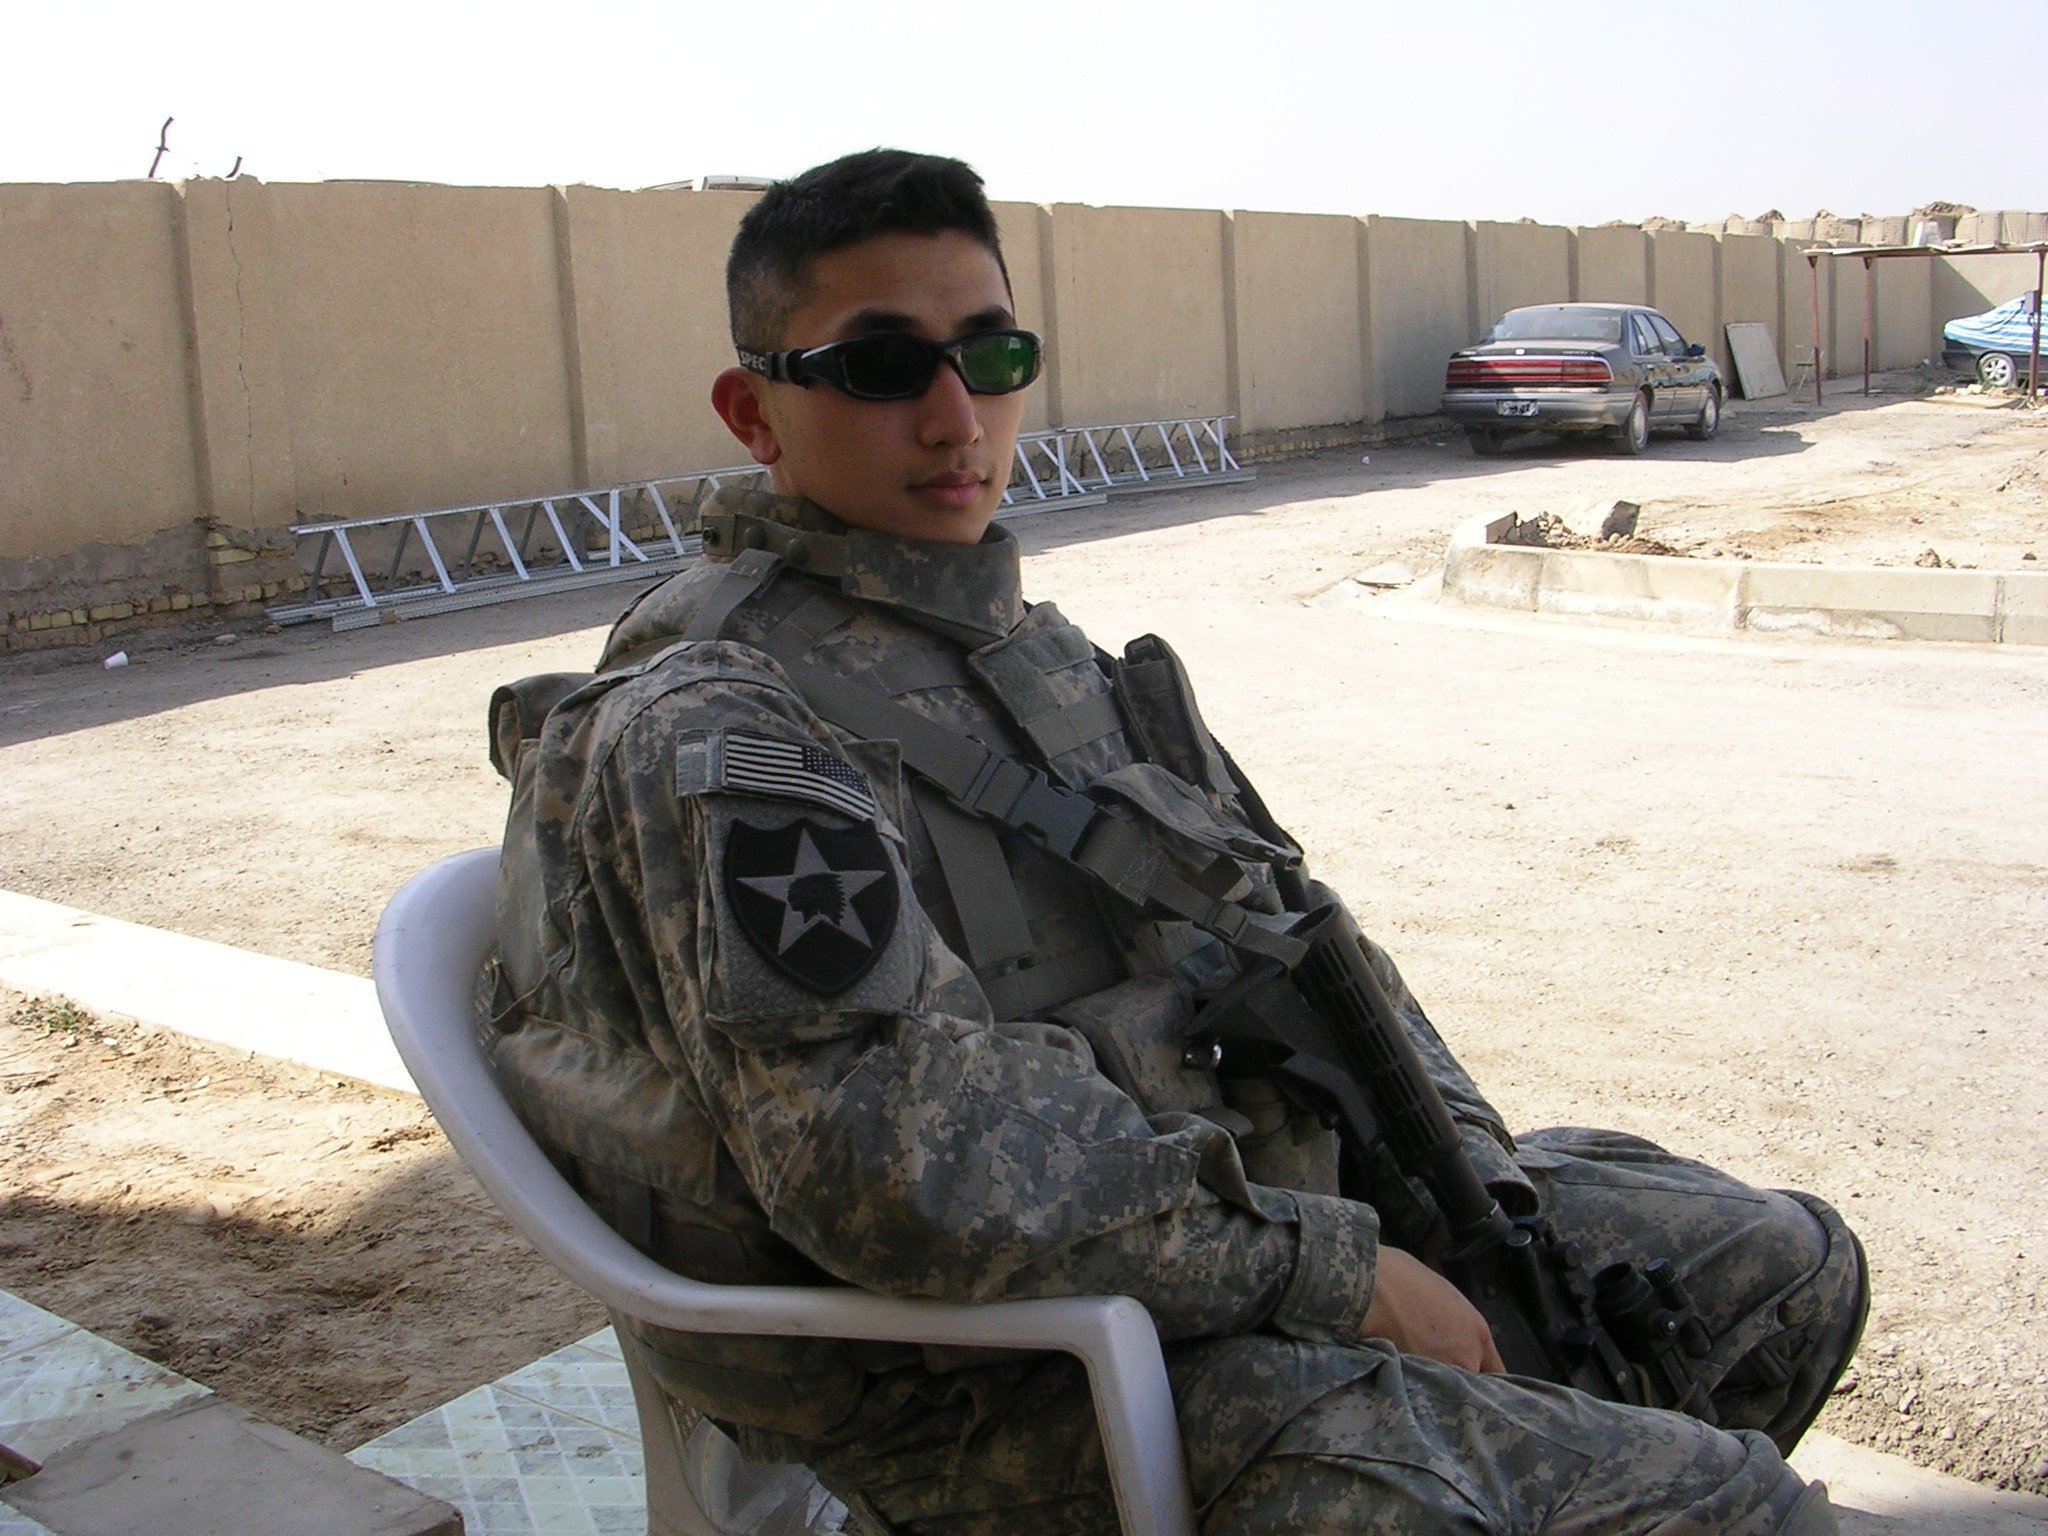 Hunter Lu rests at an Iraqi army base after a patrol in 2007 in Baqubah, Iraq. Photo courtesy of the author.